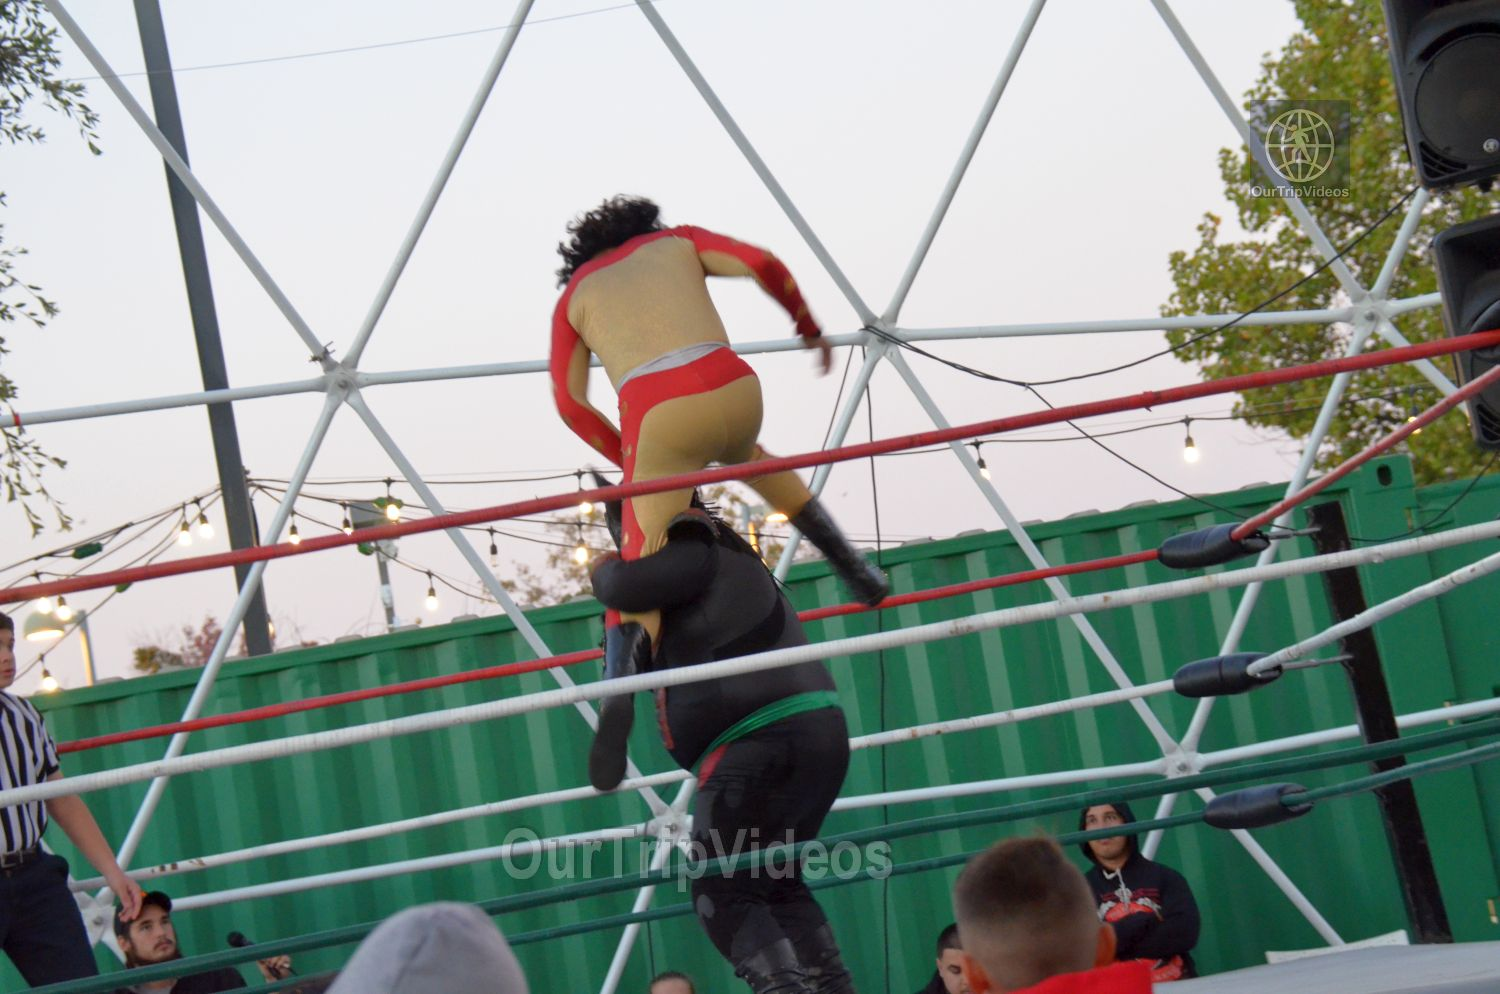 Throwdown at the Thunderdome (Luchador Wrestling), Fremont, CA, USA - Picture 6 of 25